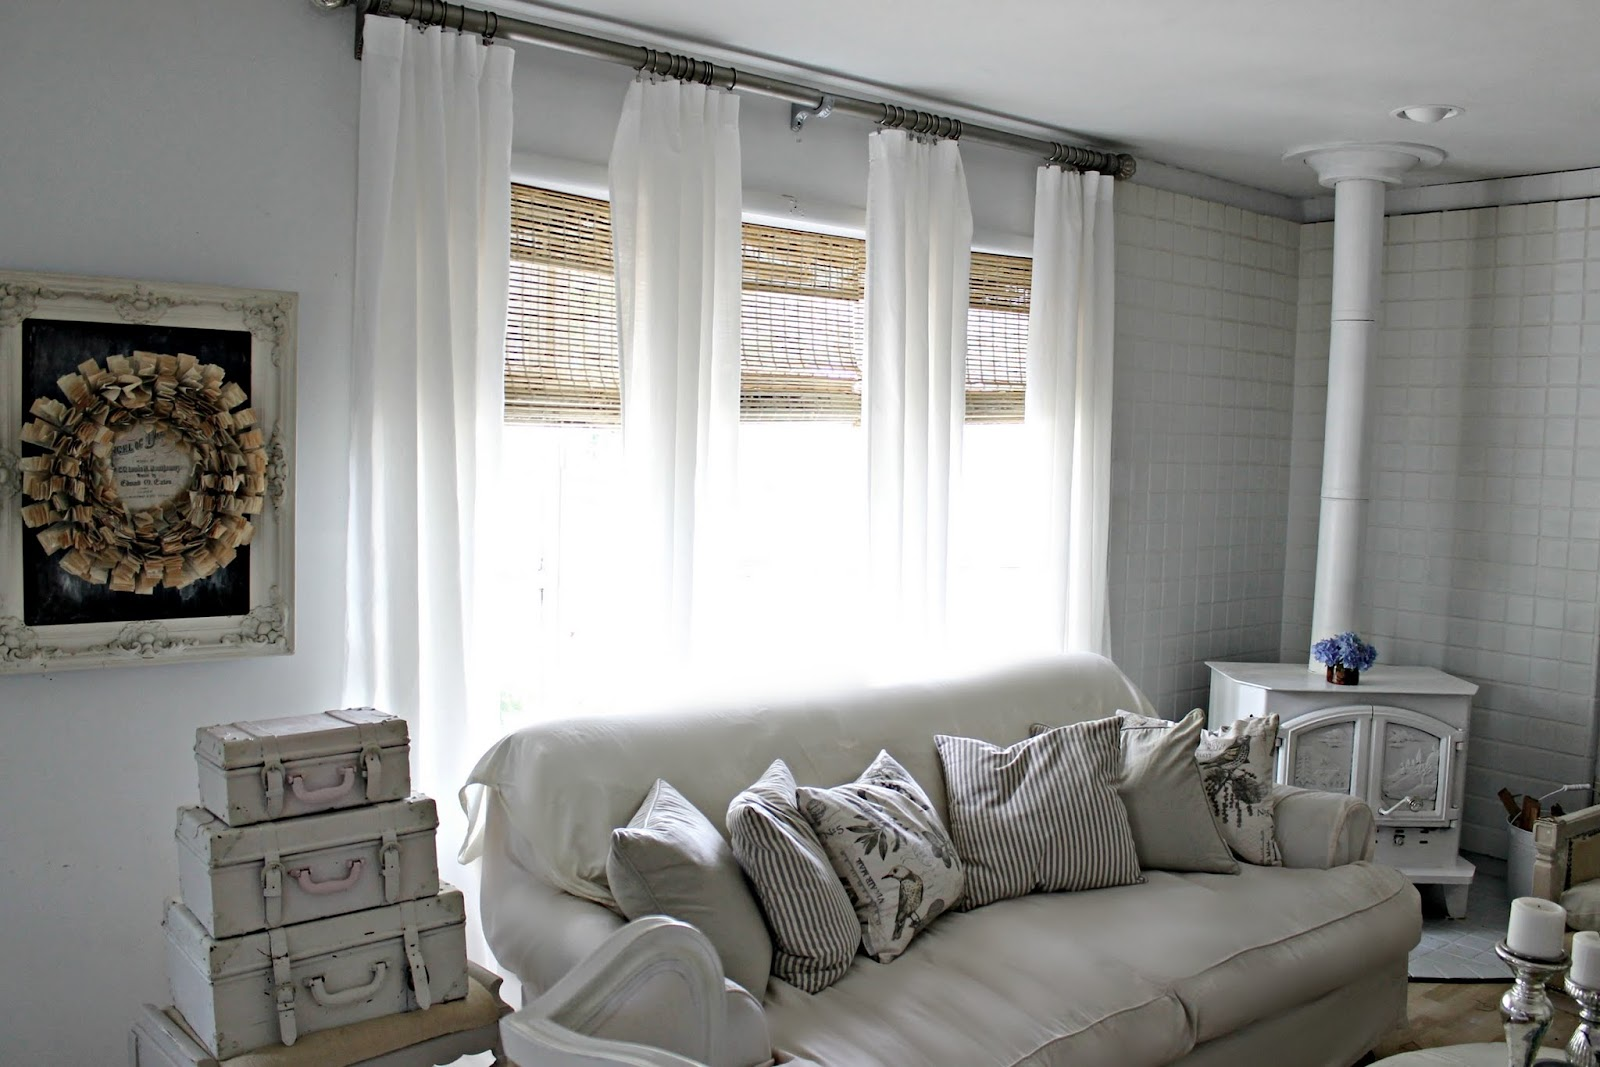 1067 #7A6951 Bamboo Blinds That I Ordered From Overstock Com I Added A Sisal Rug pic Overstock Patio Doors 35611600